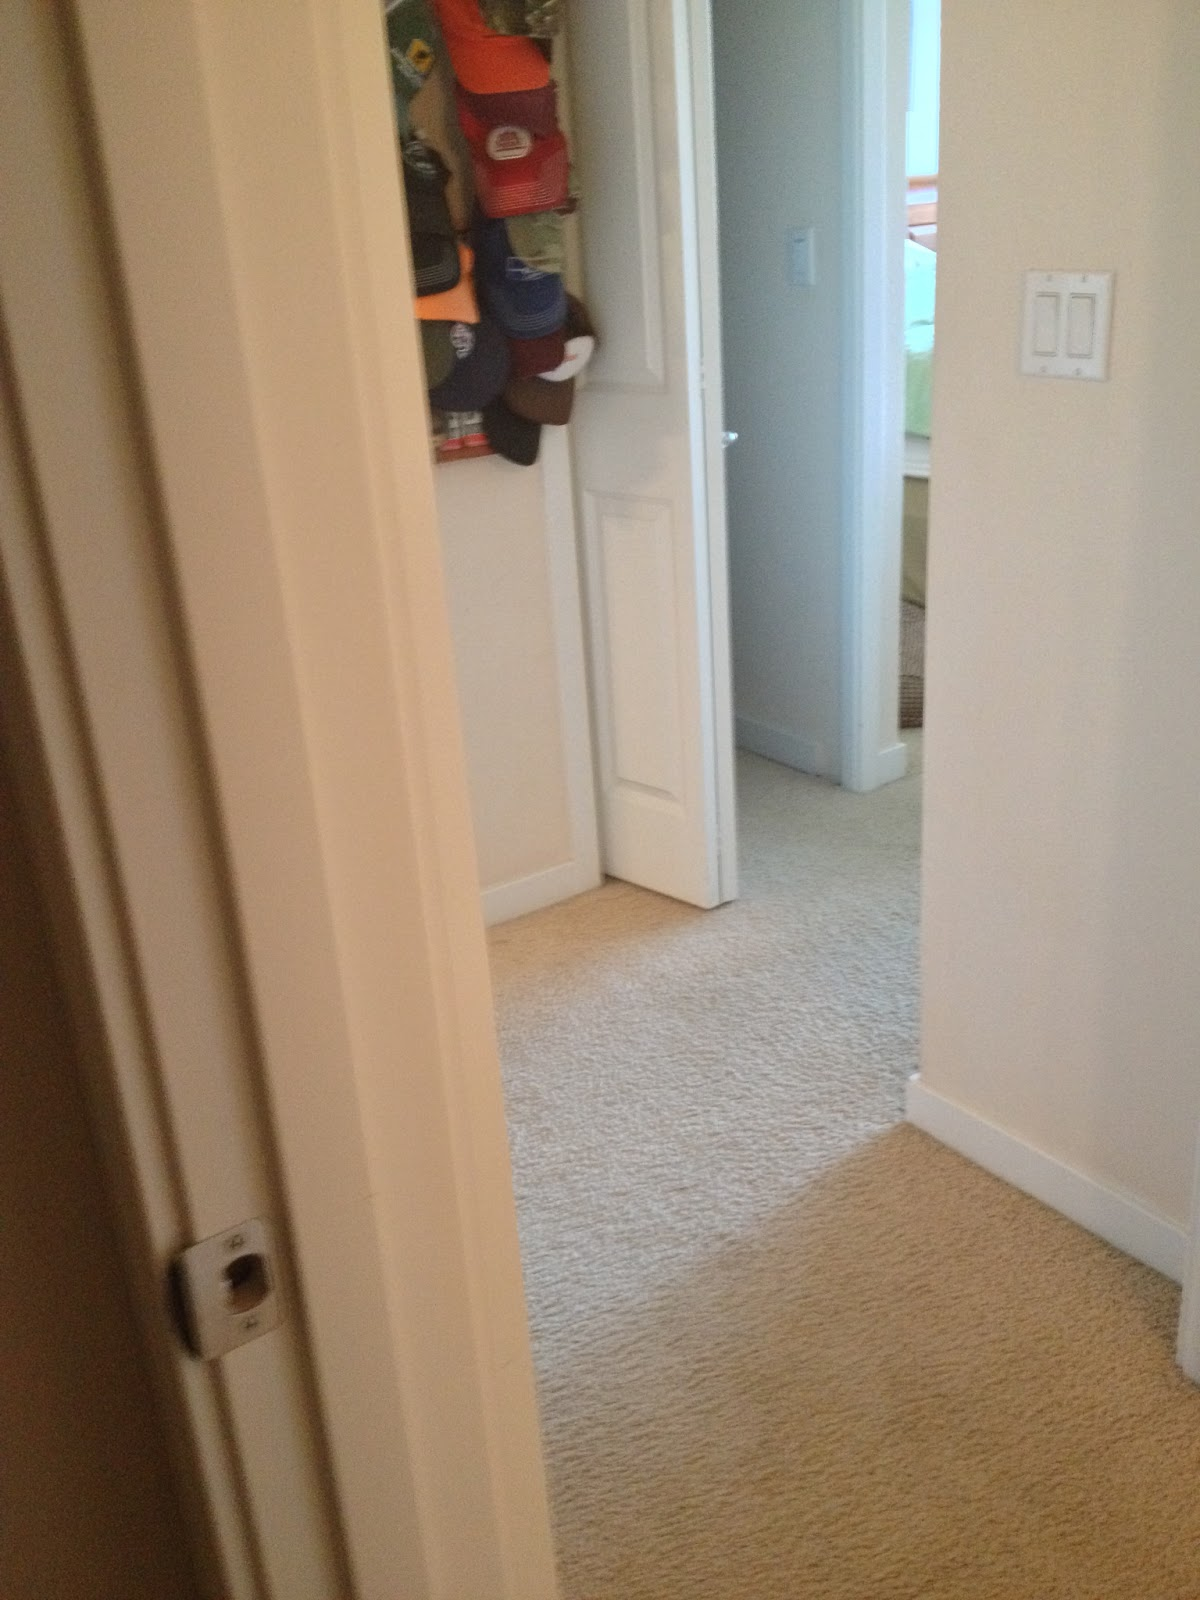 Looking from the guest bathroom into the master bedroom hall (the open title=